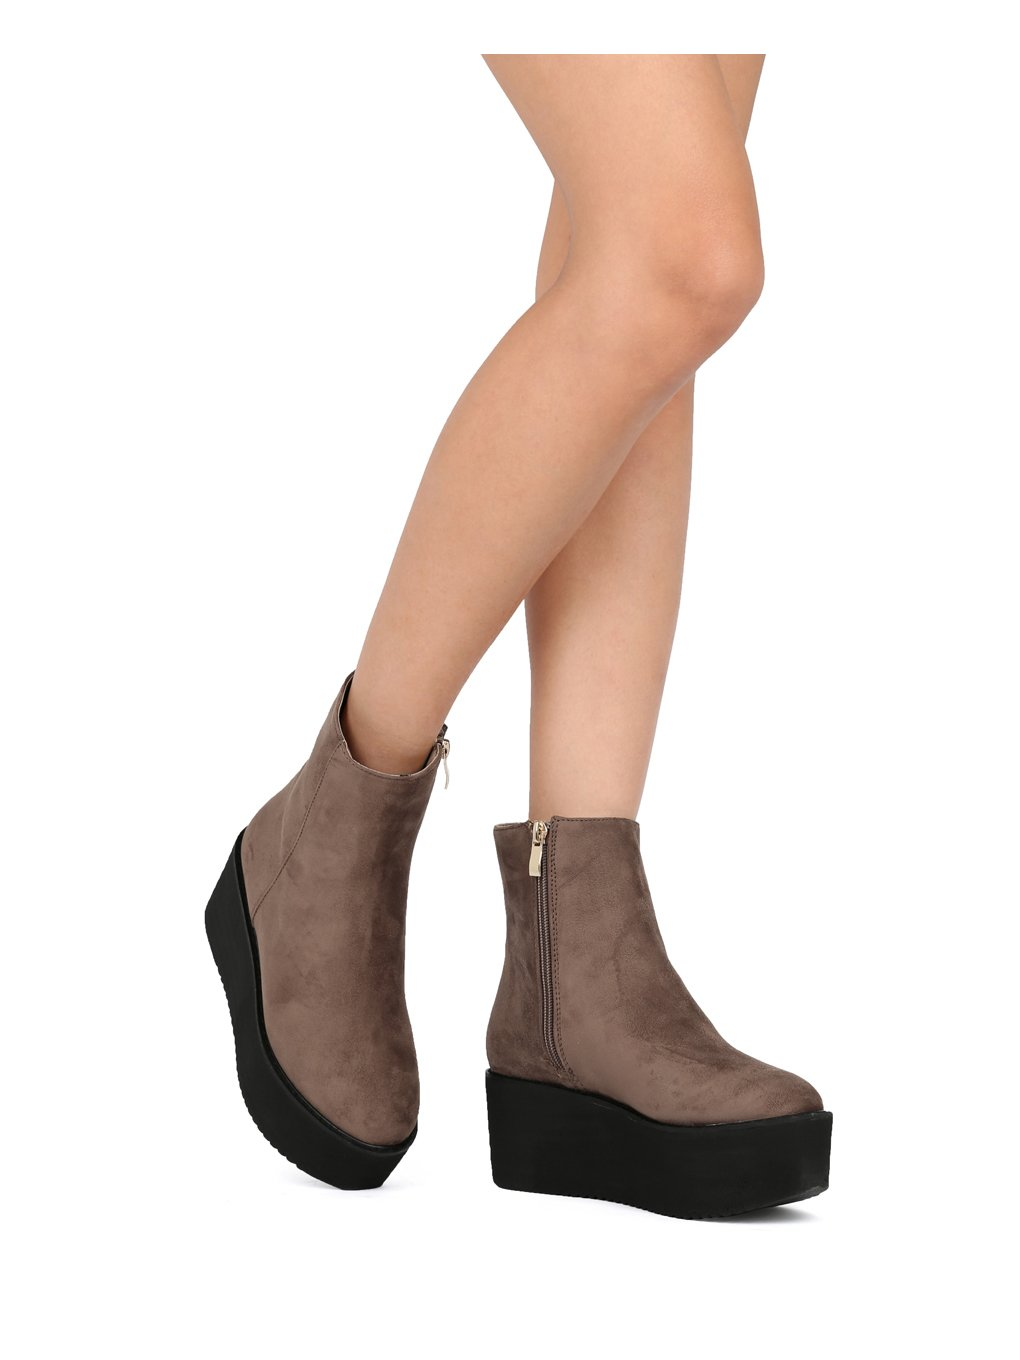 Indulge Hebe-I Women Round Toe Platform Creeper Ankle Bootie HE66 - Taupe Faux Suede (Size: 7.0) by Indulge (Image #6)